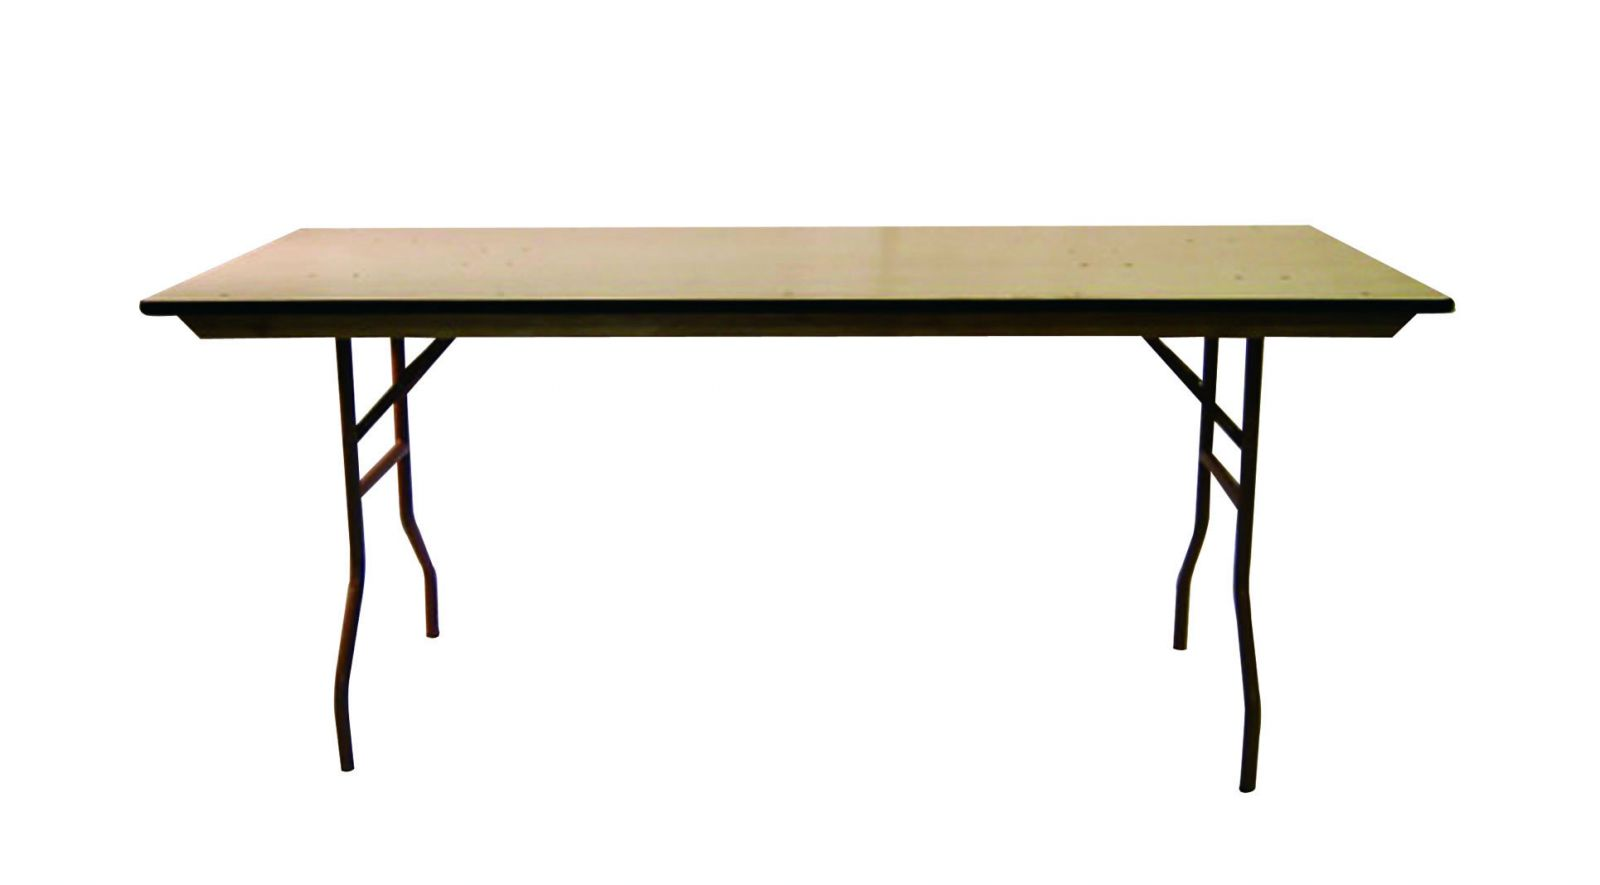 Superb img of  and oblong banquet tables home tables round and oblong banquet tables with #151109 color and 1600x885 pixels